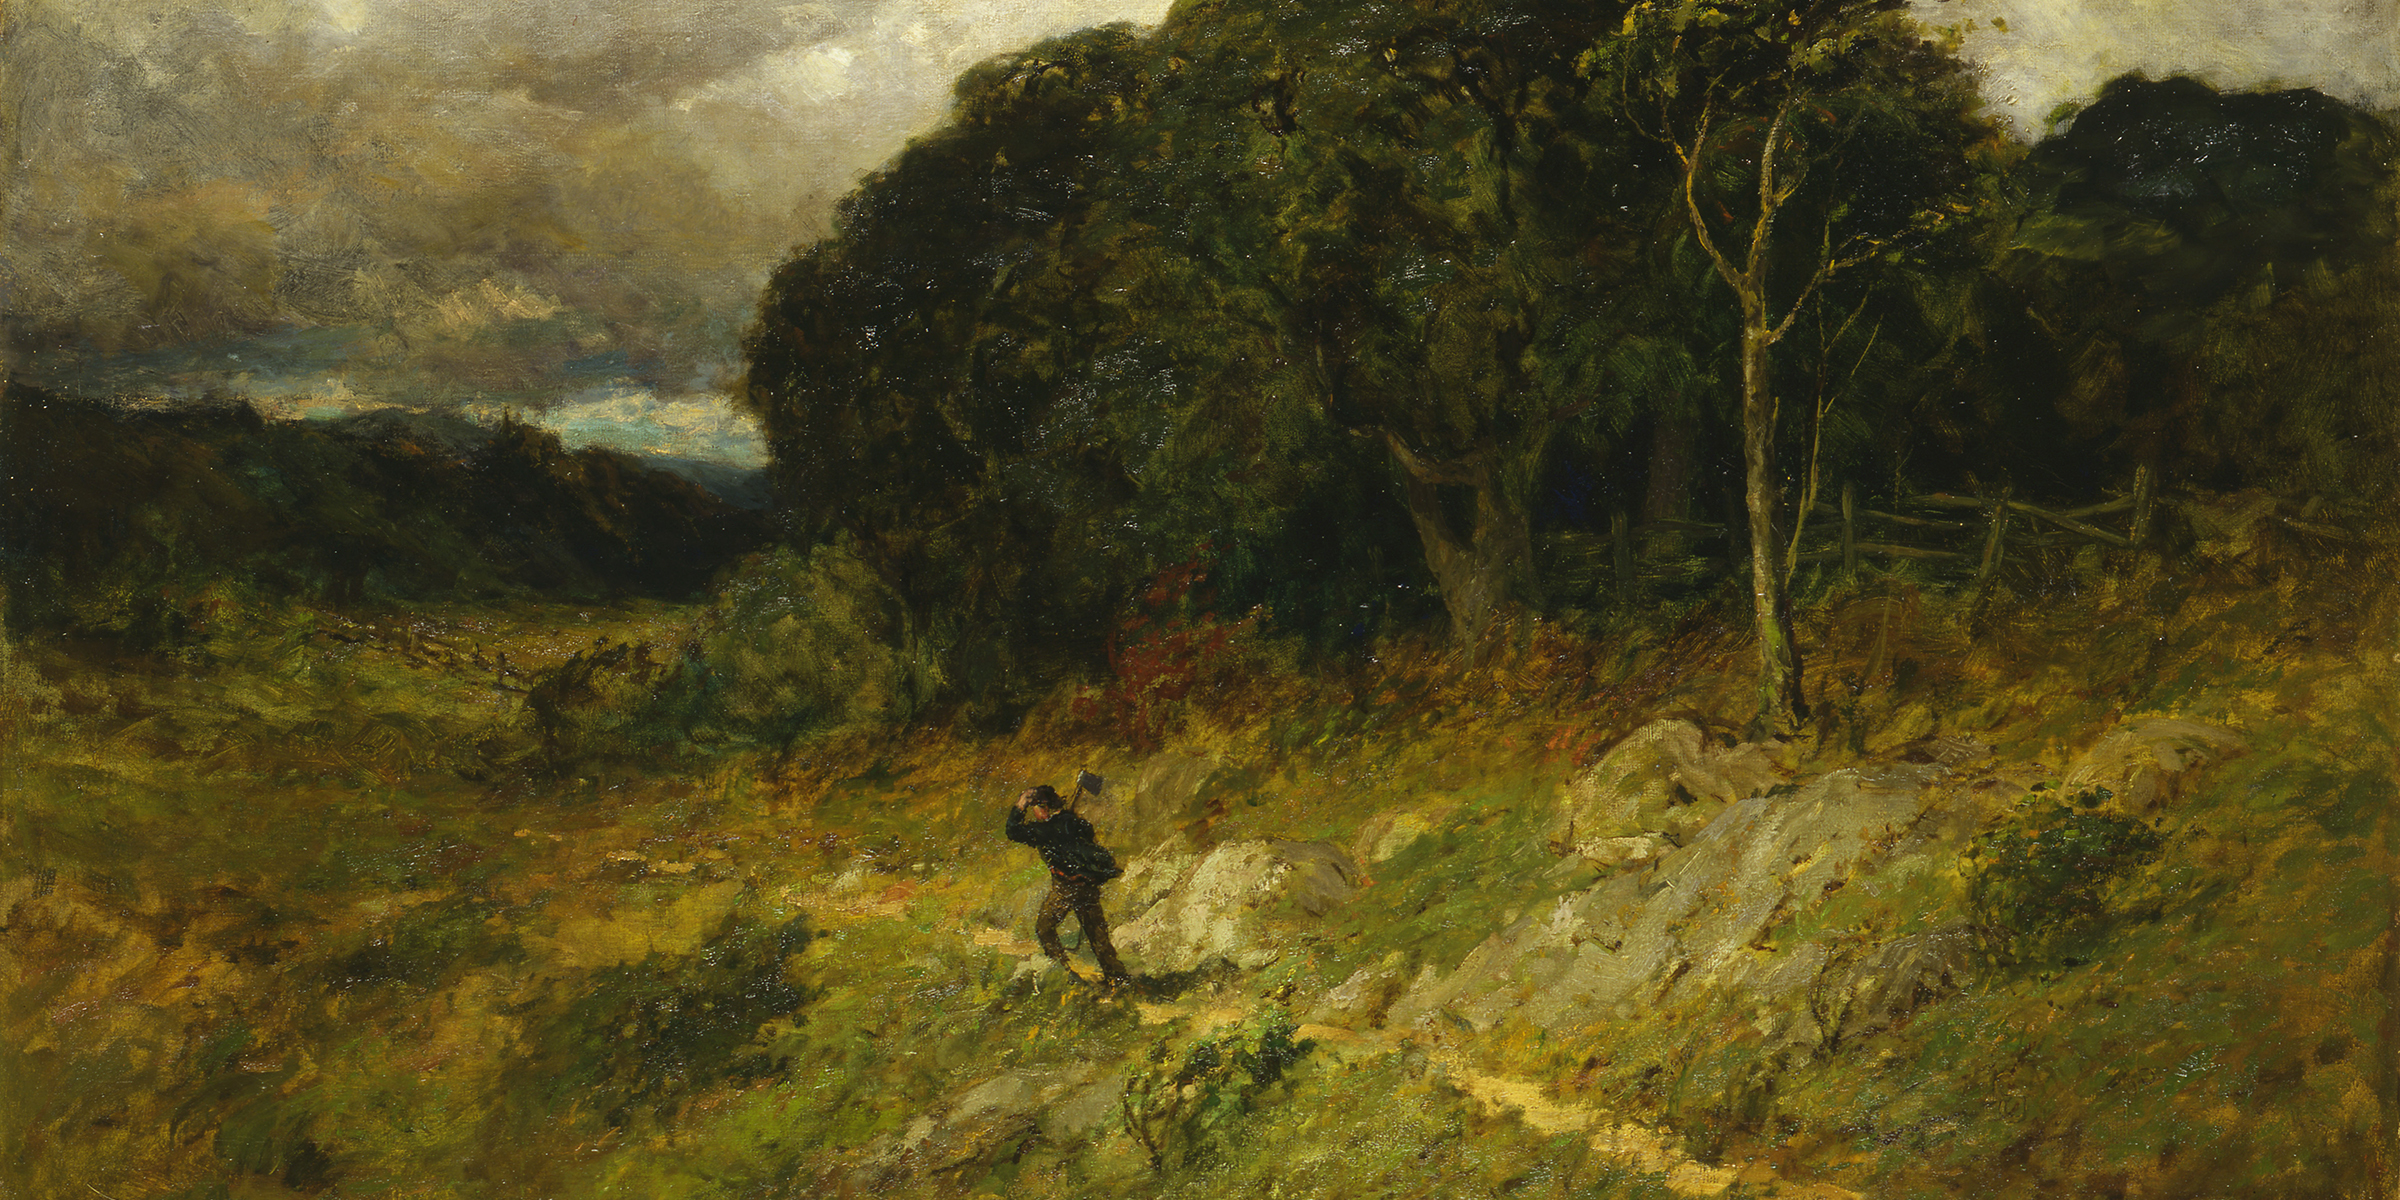 Approaching Storm (detail), by Edward Mitchell Bannister, 1886. © Smithsonian American Art Museum, Washington, DC/Art Resource, NY.